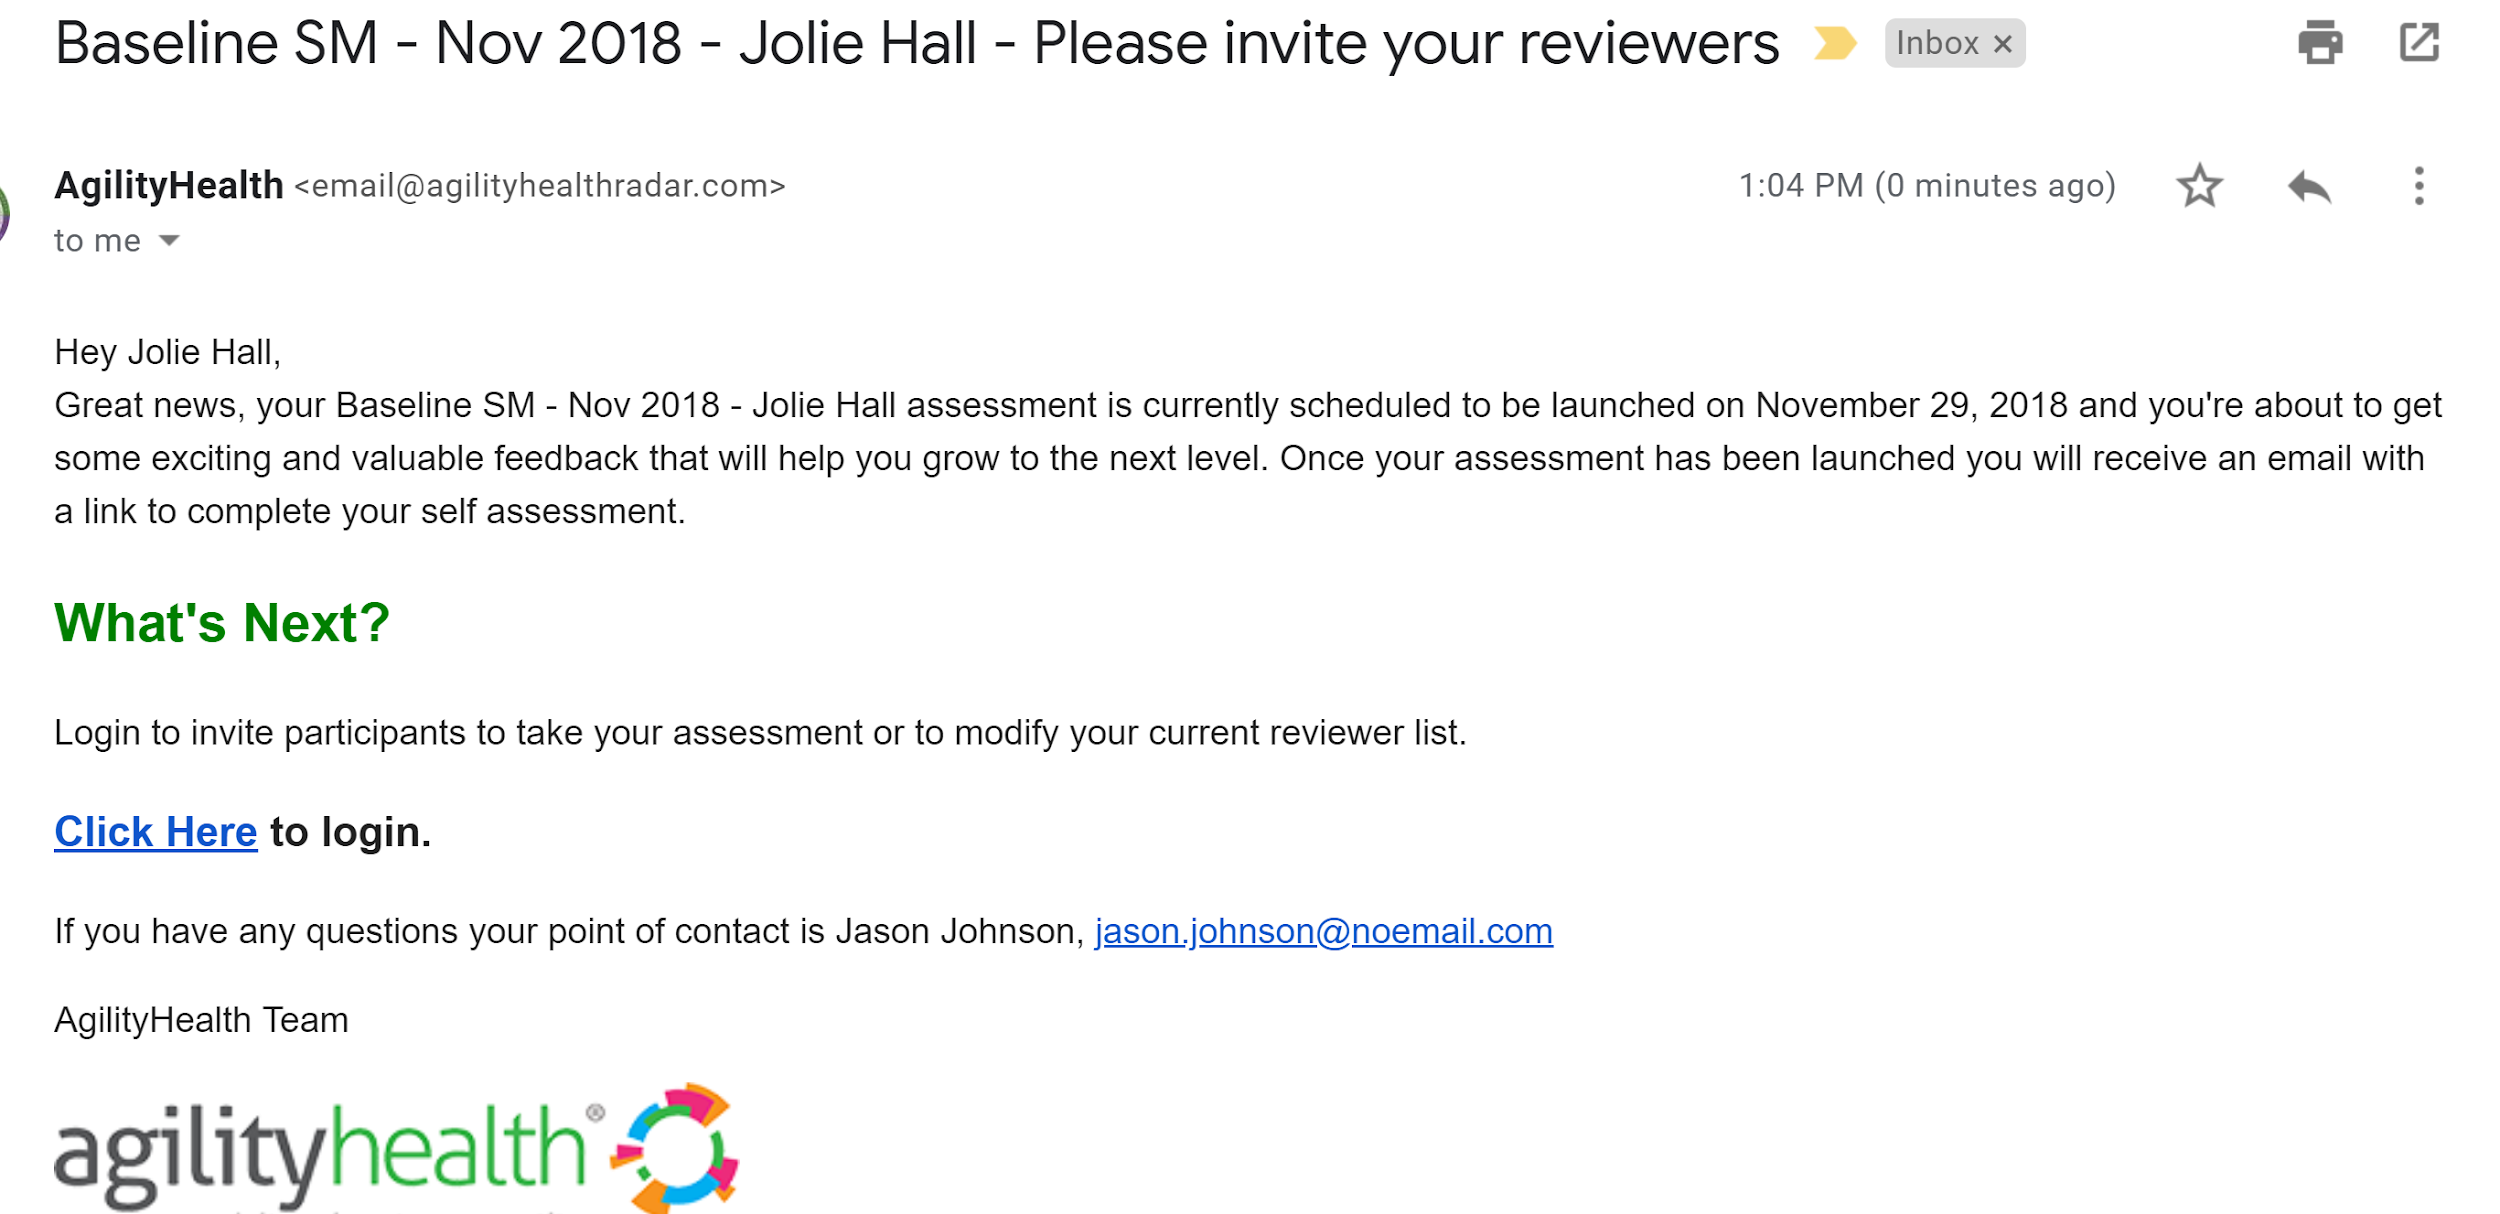 Invite_reviewers_email.png